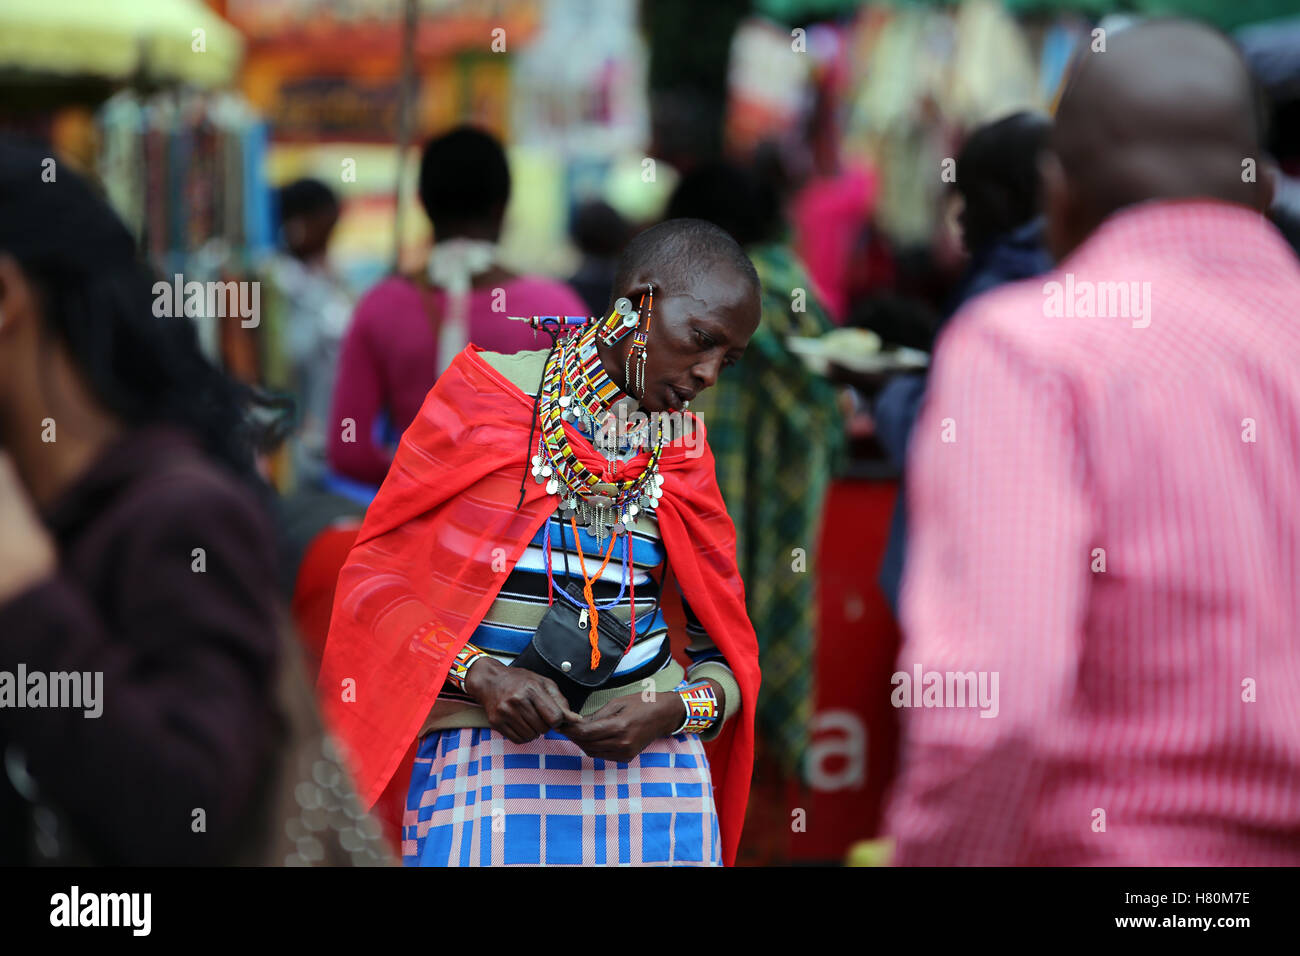 Masai saleswoman on market place, Nairobi, Kenya - Stock Image